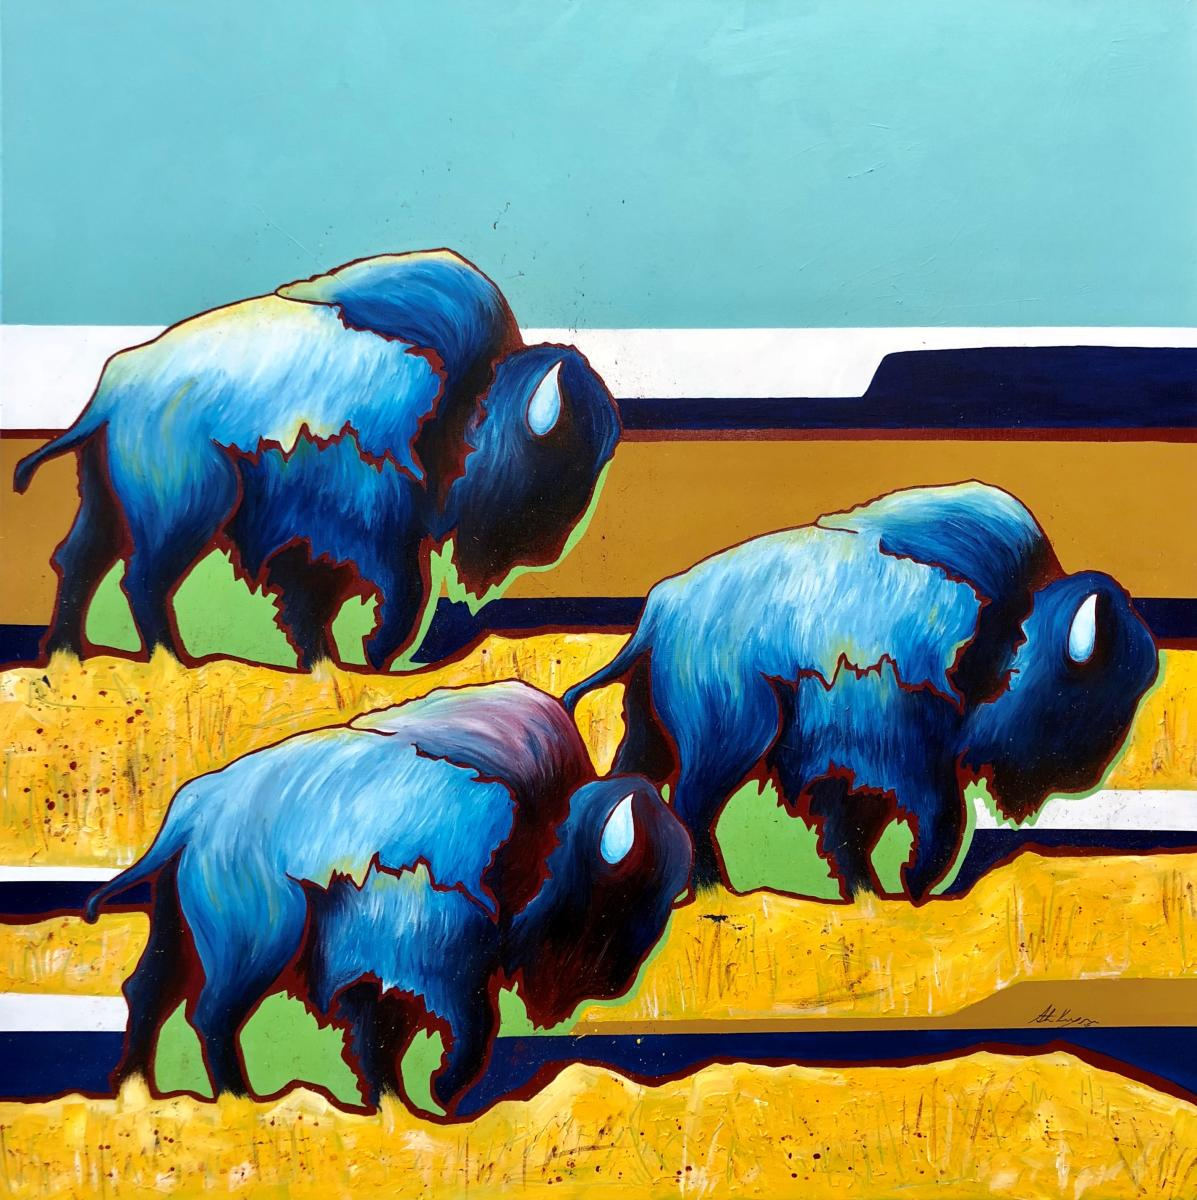 Artistic painting of bison on the prairie using blues and yellows.